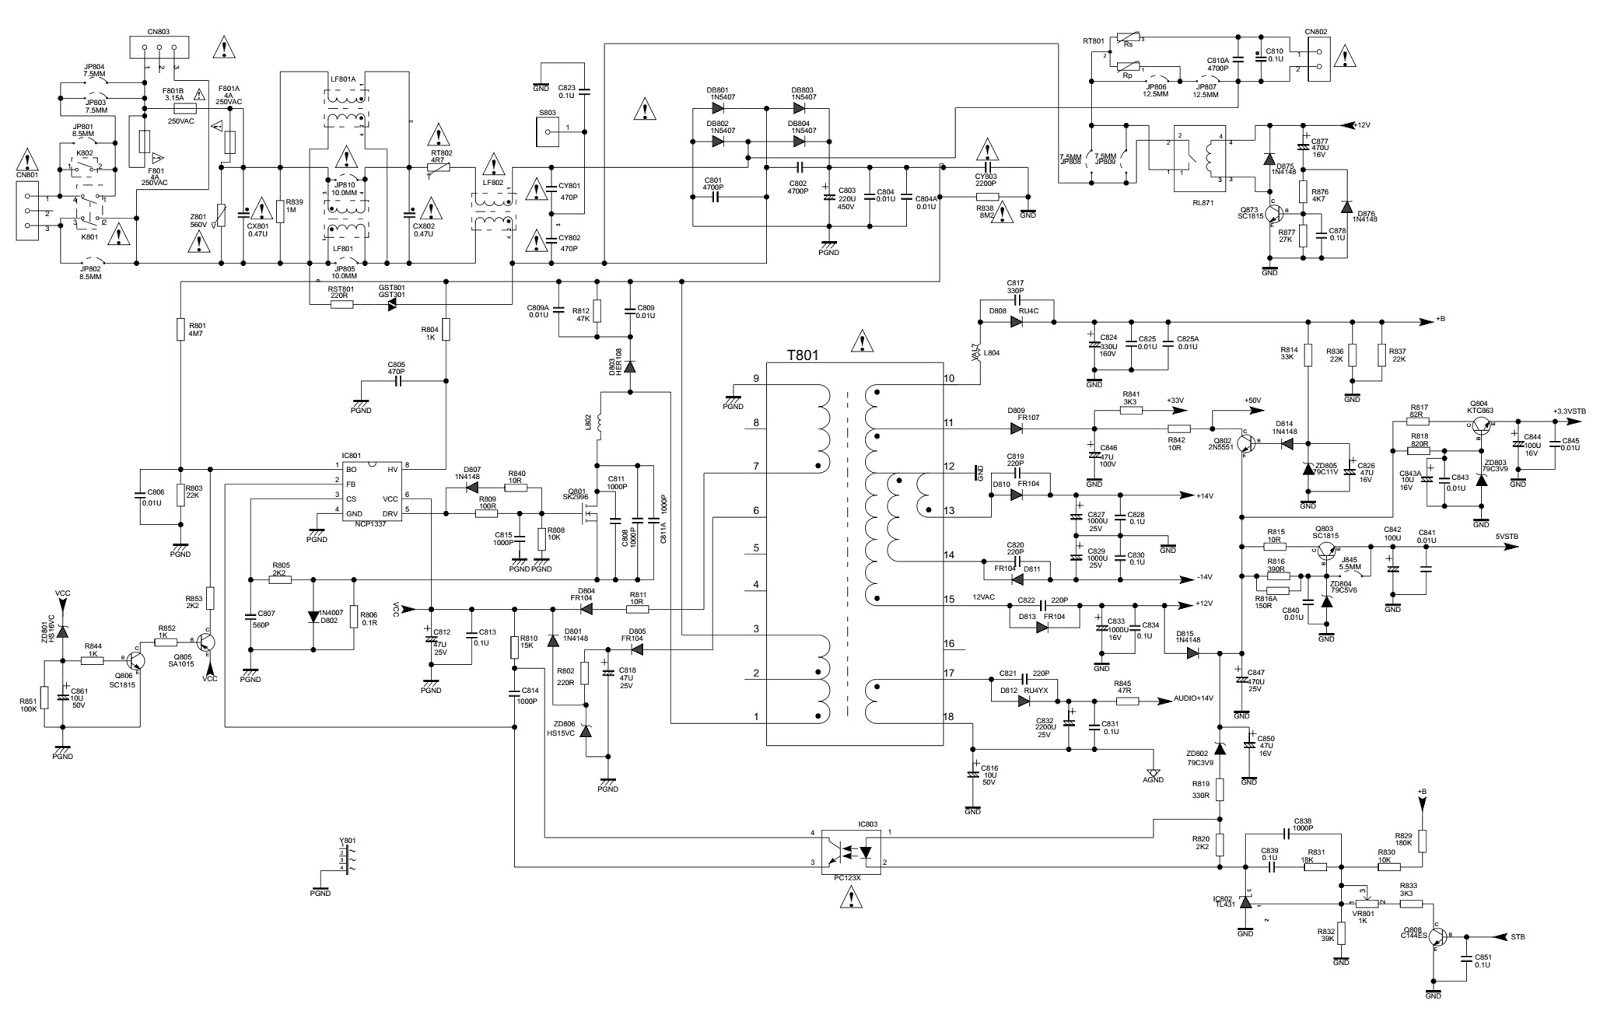 208 to 24 volt transformer wiring diagram cadet heater mars 50327 37